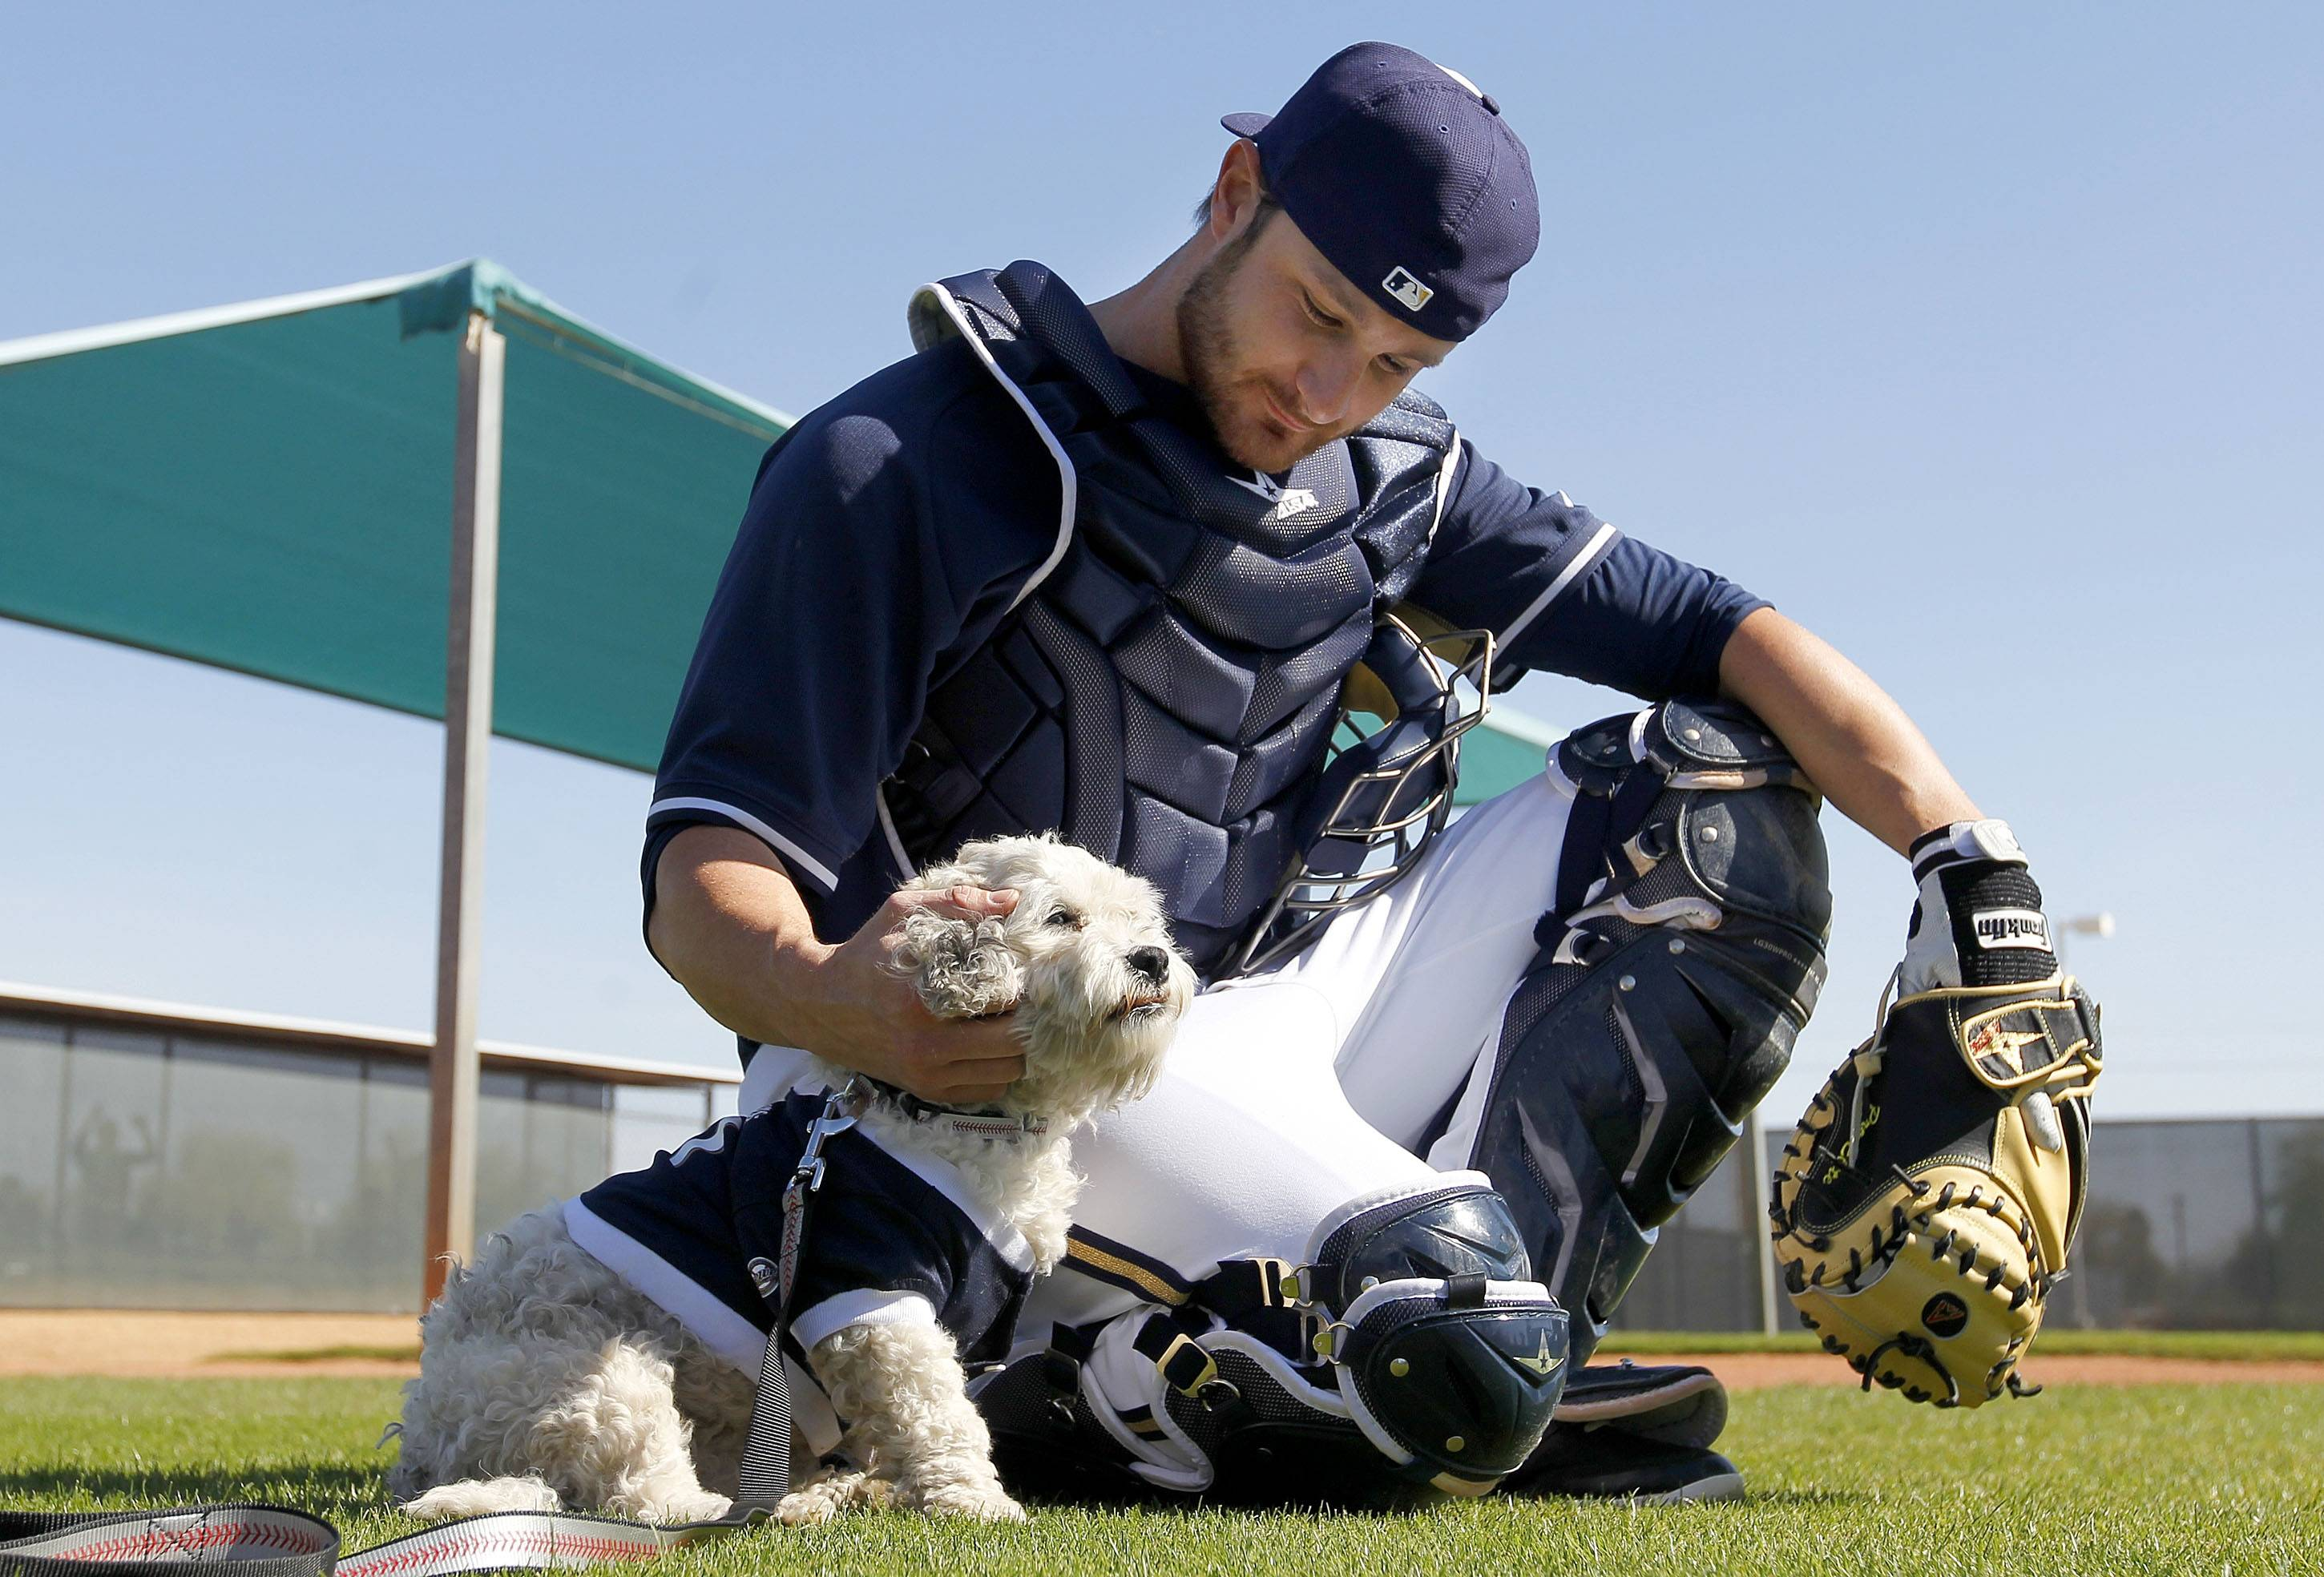 Milwaukee Brewers catcher Jonathan Lucroy pets Hank the dog during practice last month in Phoenix.